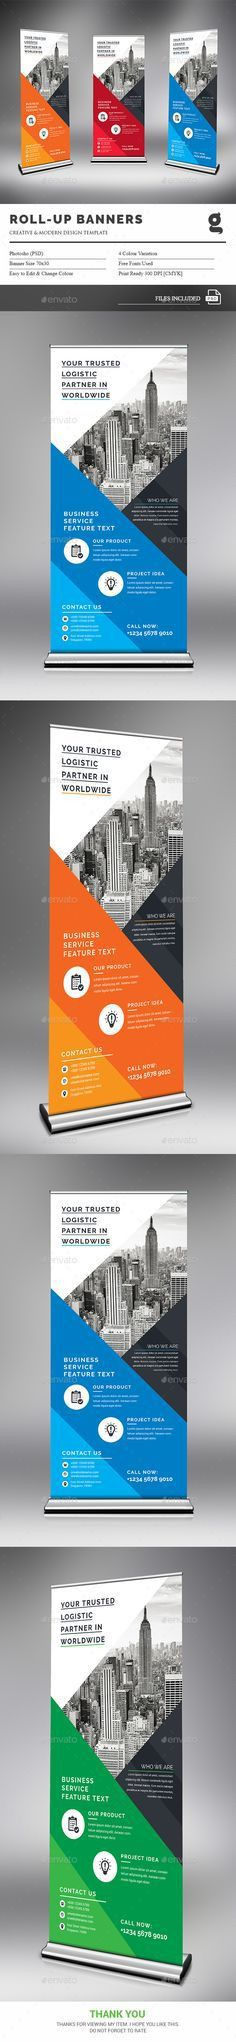 Food Roll up Banner | Banner template, Banners and Signage